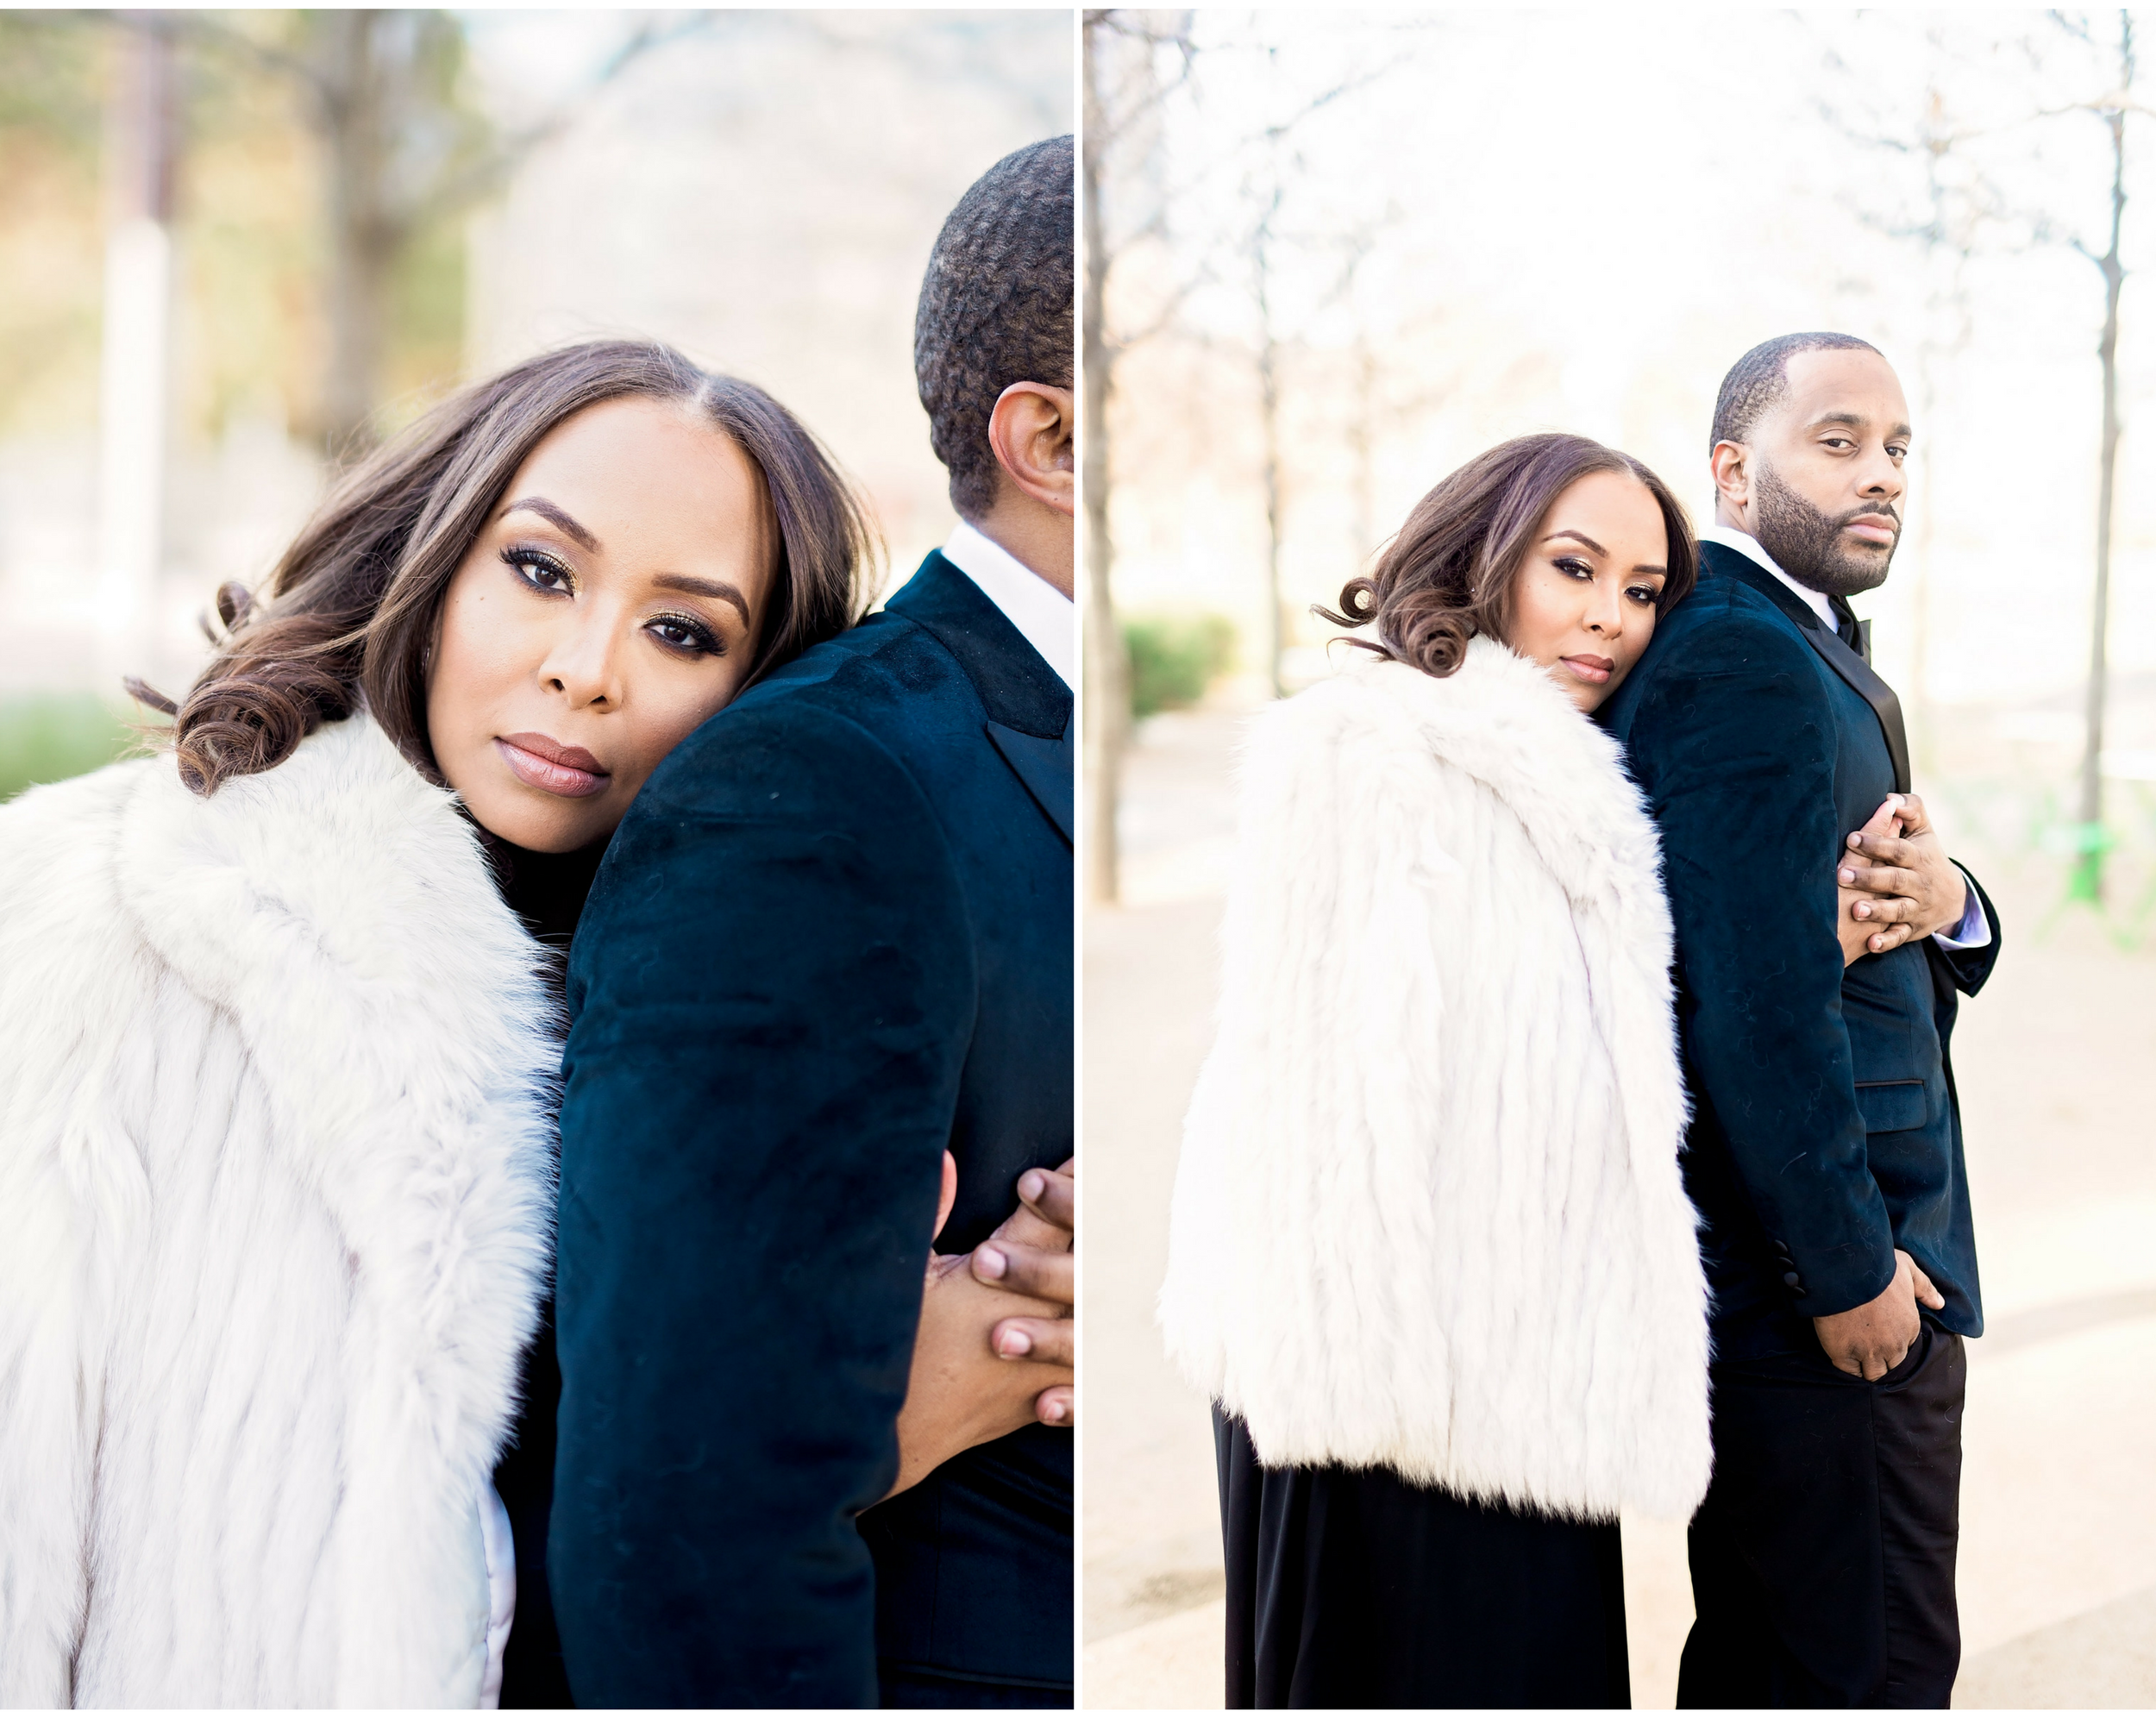 Dorian-Chauncy-Engagement-Pharris-Photography1.png